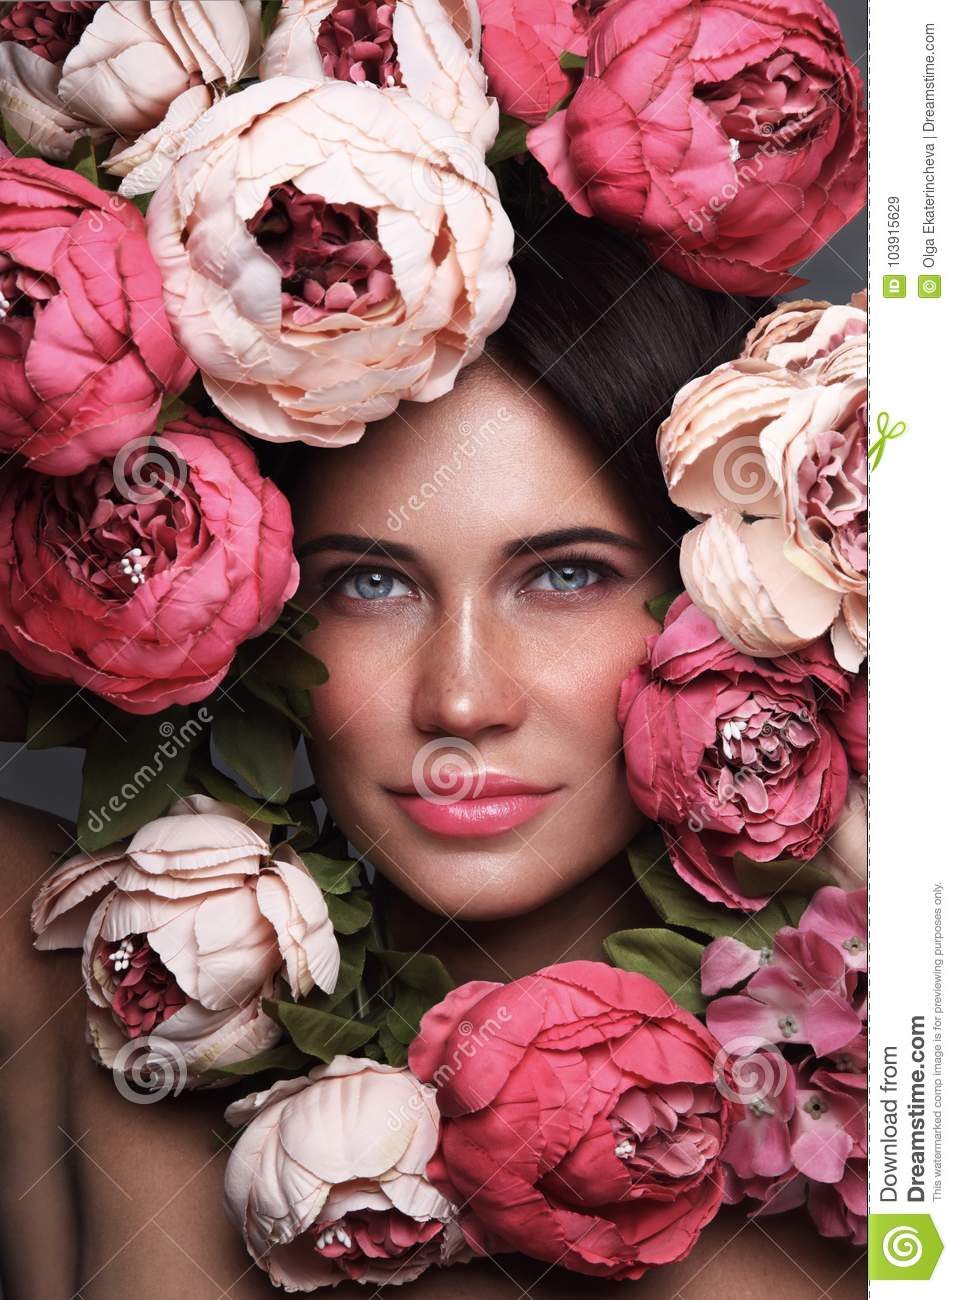 Portrait of beautiful woman with flowers around her face stock image portrait of beautiful woman with flowers around her face izmirmasajfo